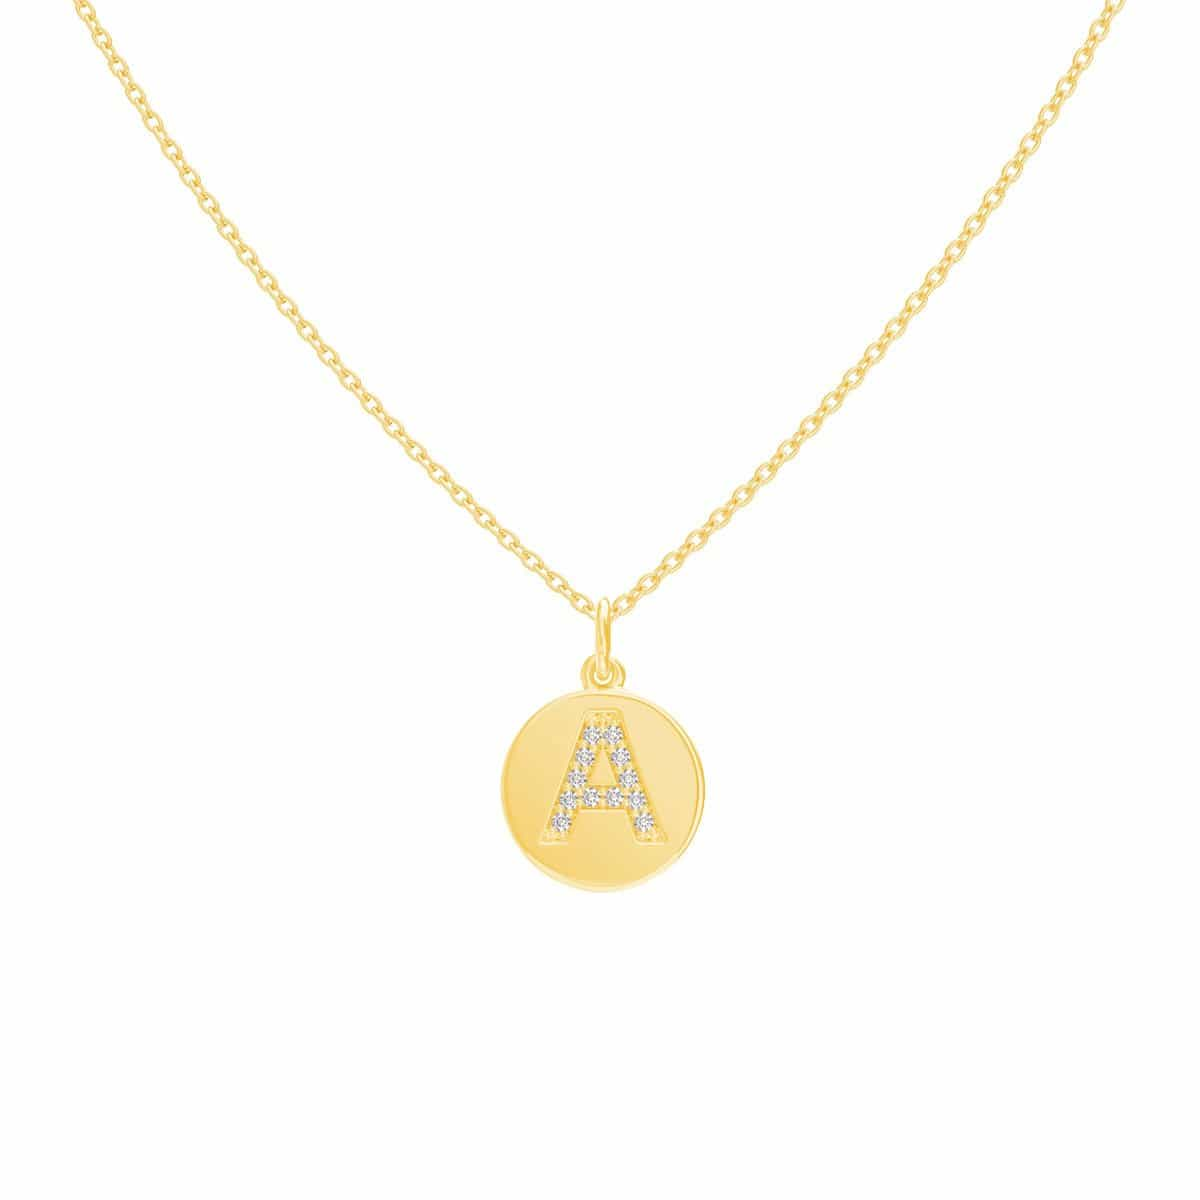 Moyen Pave Initial Coin Necklace